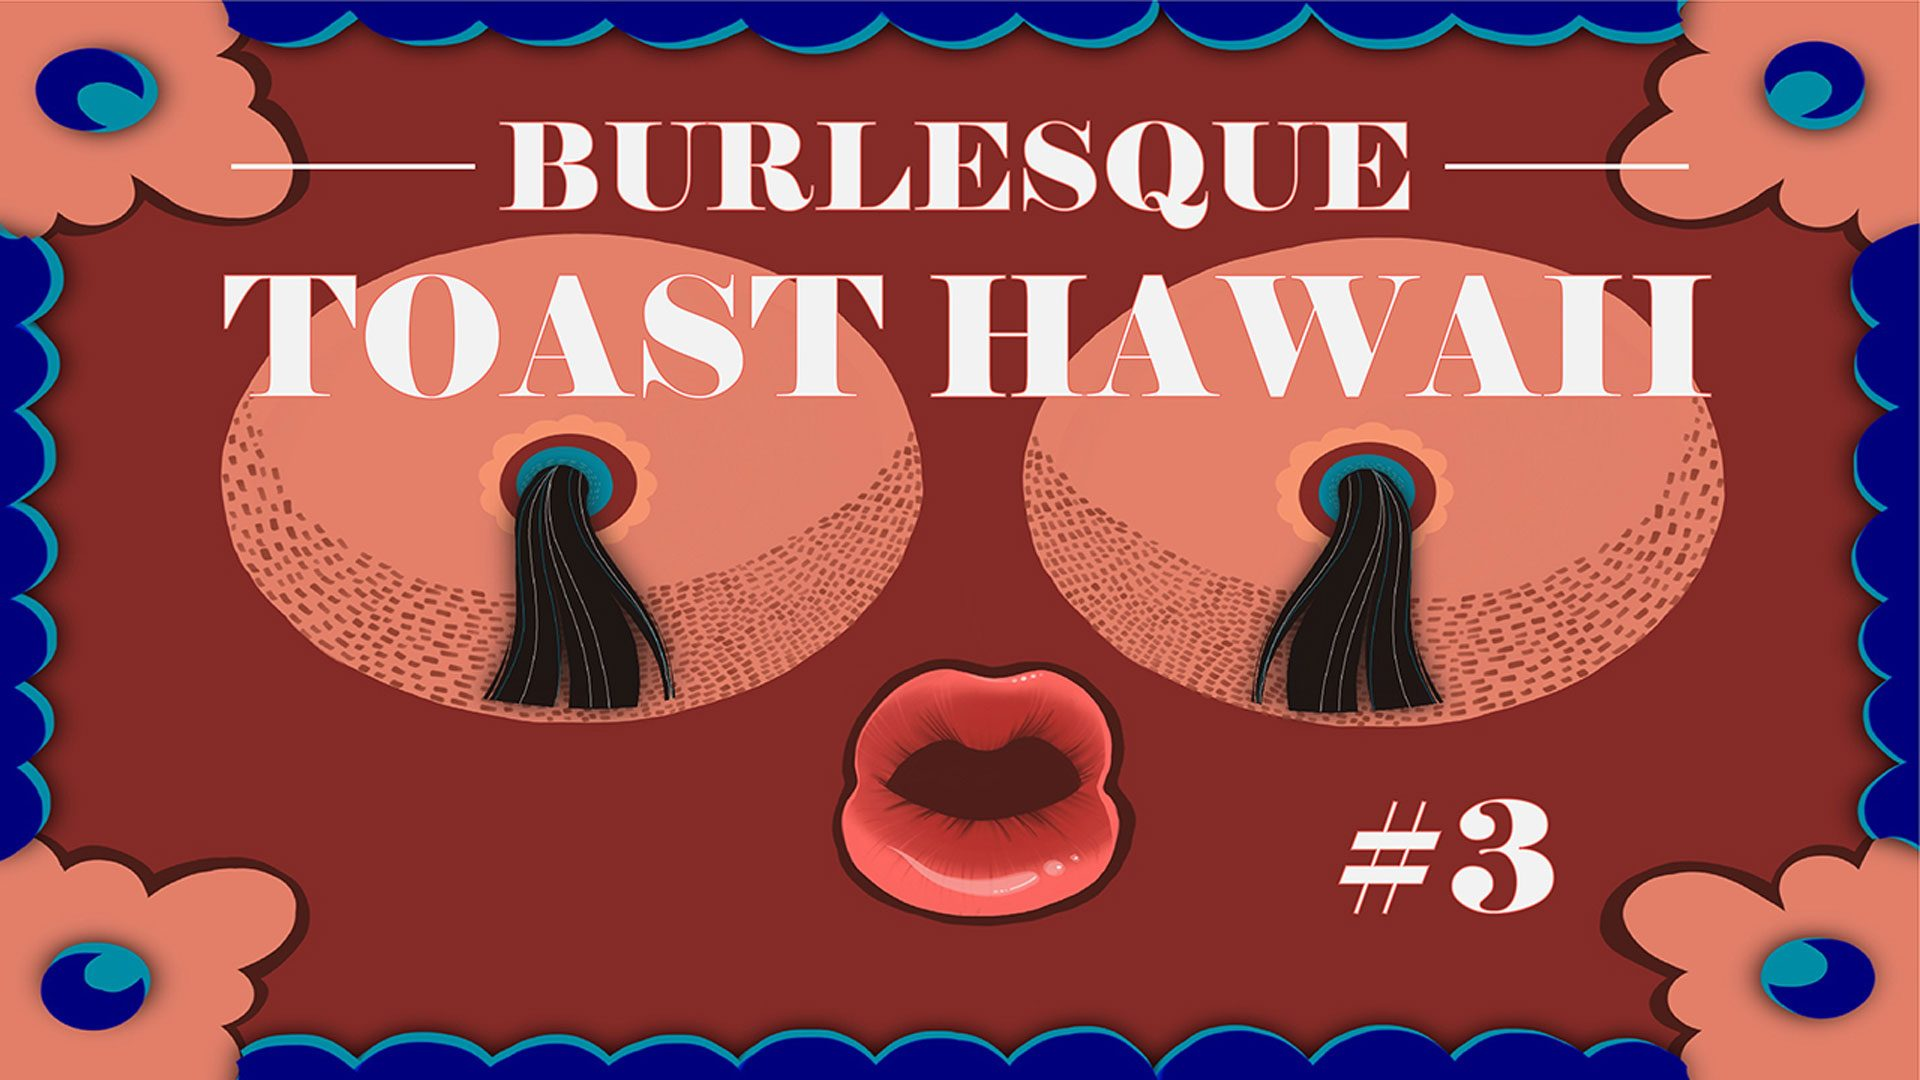 toast hawai burlesque